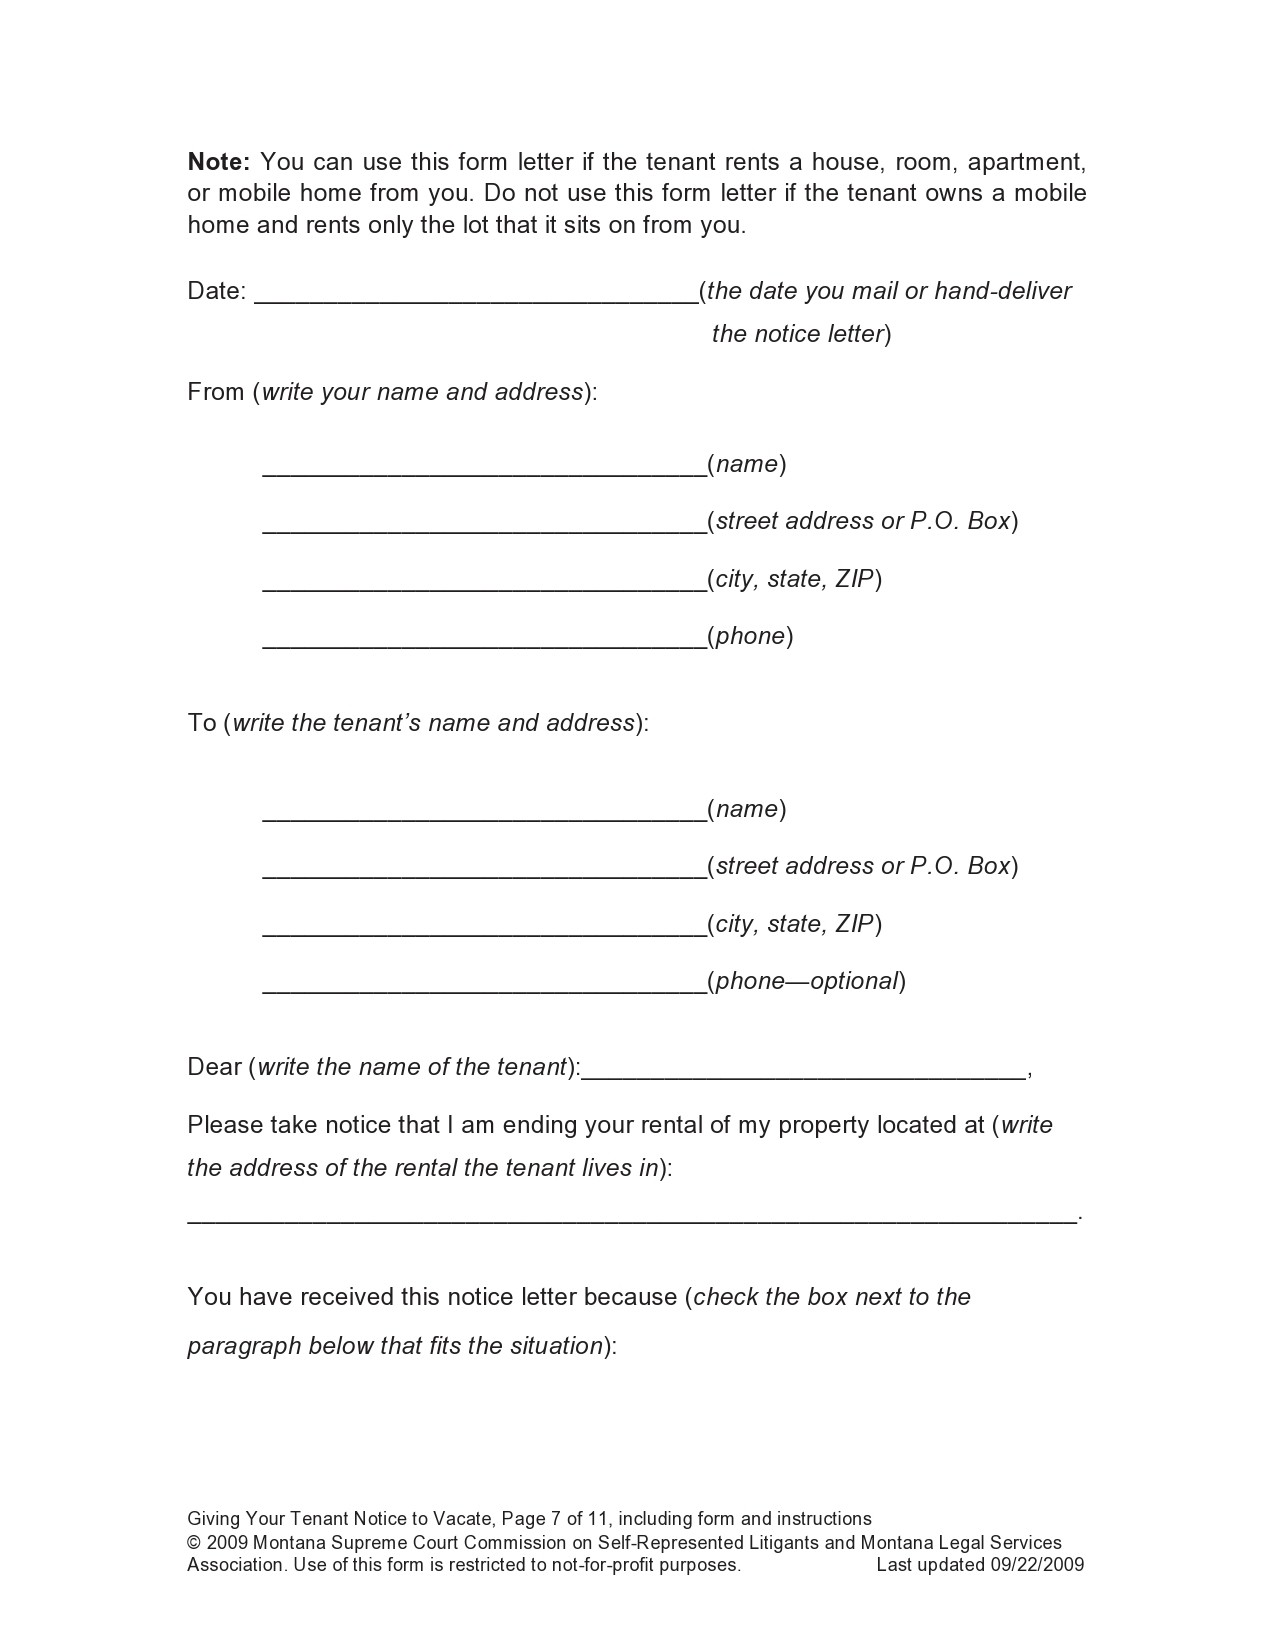 10 Day Eviction Notice Template from templatelab.com